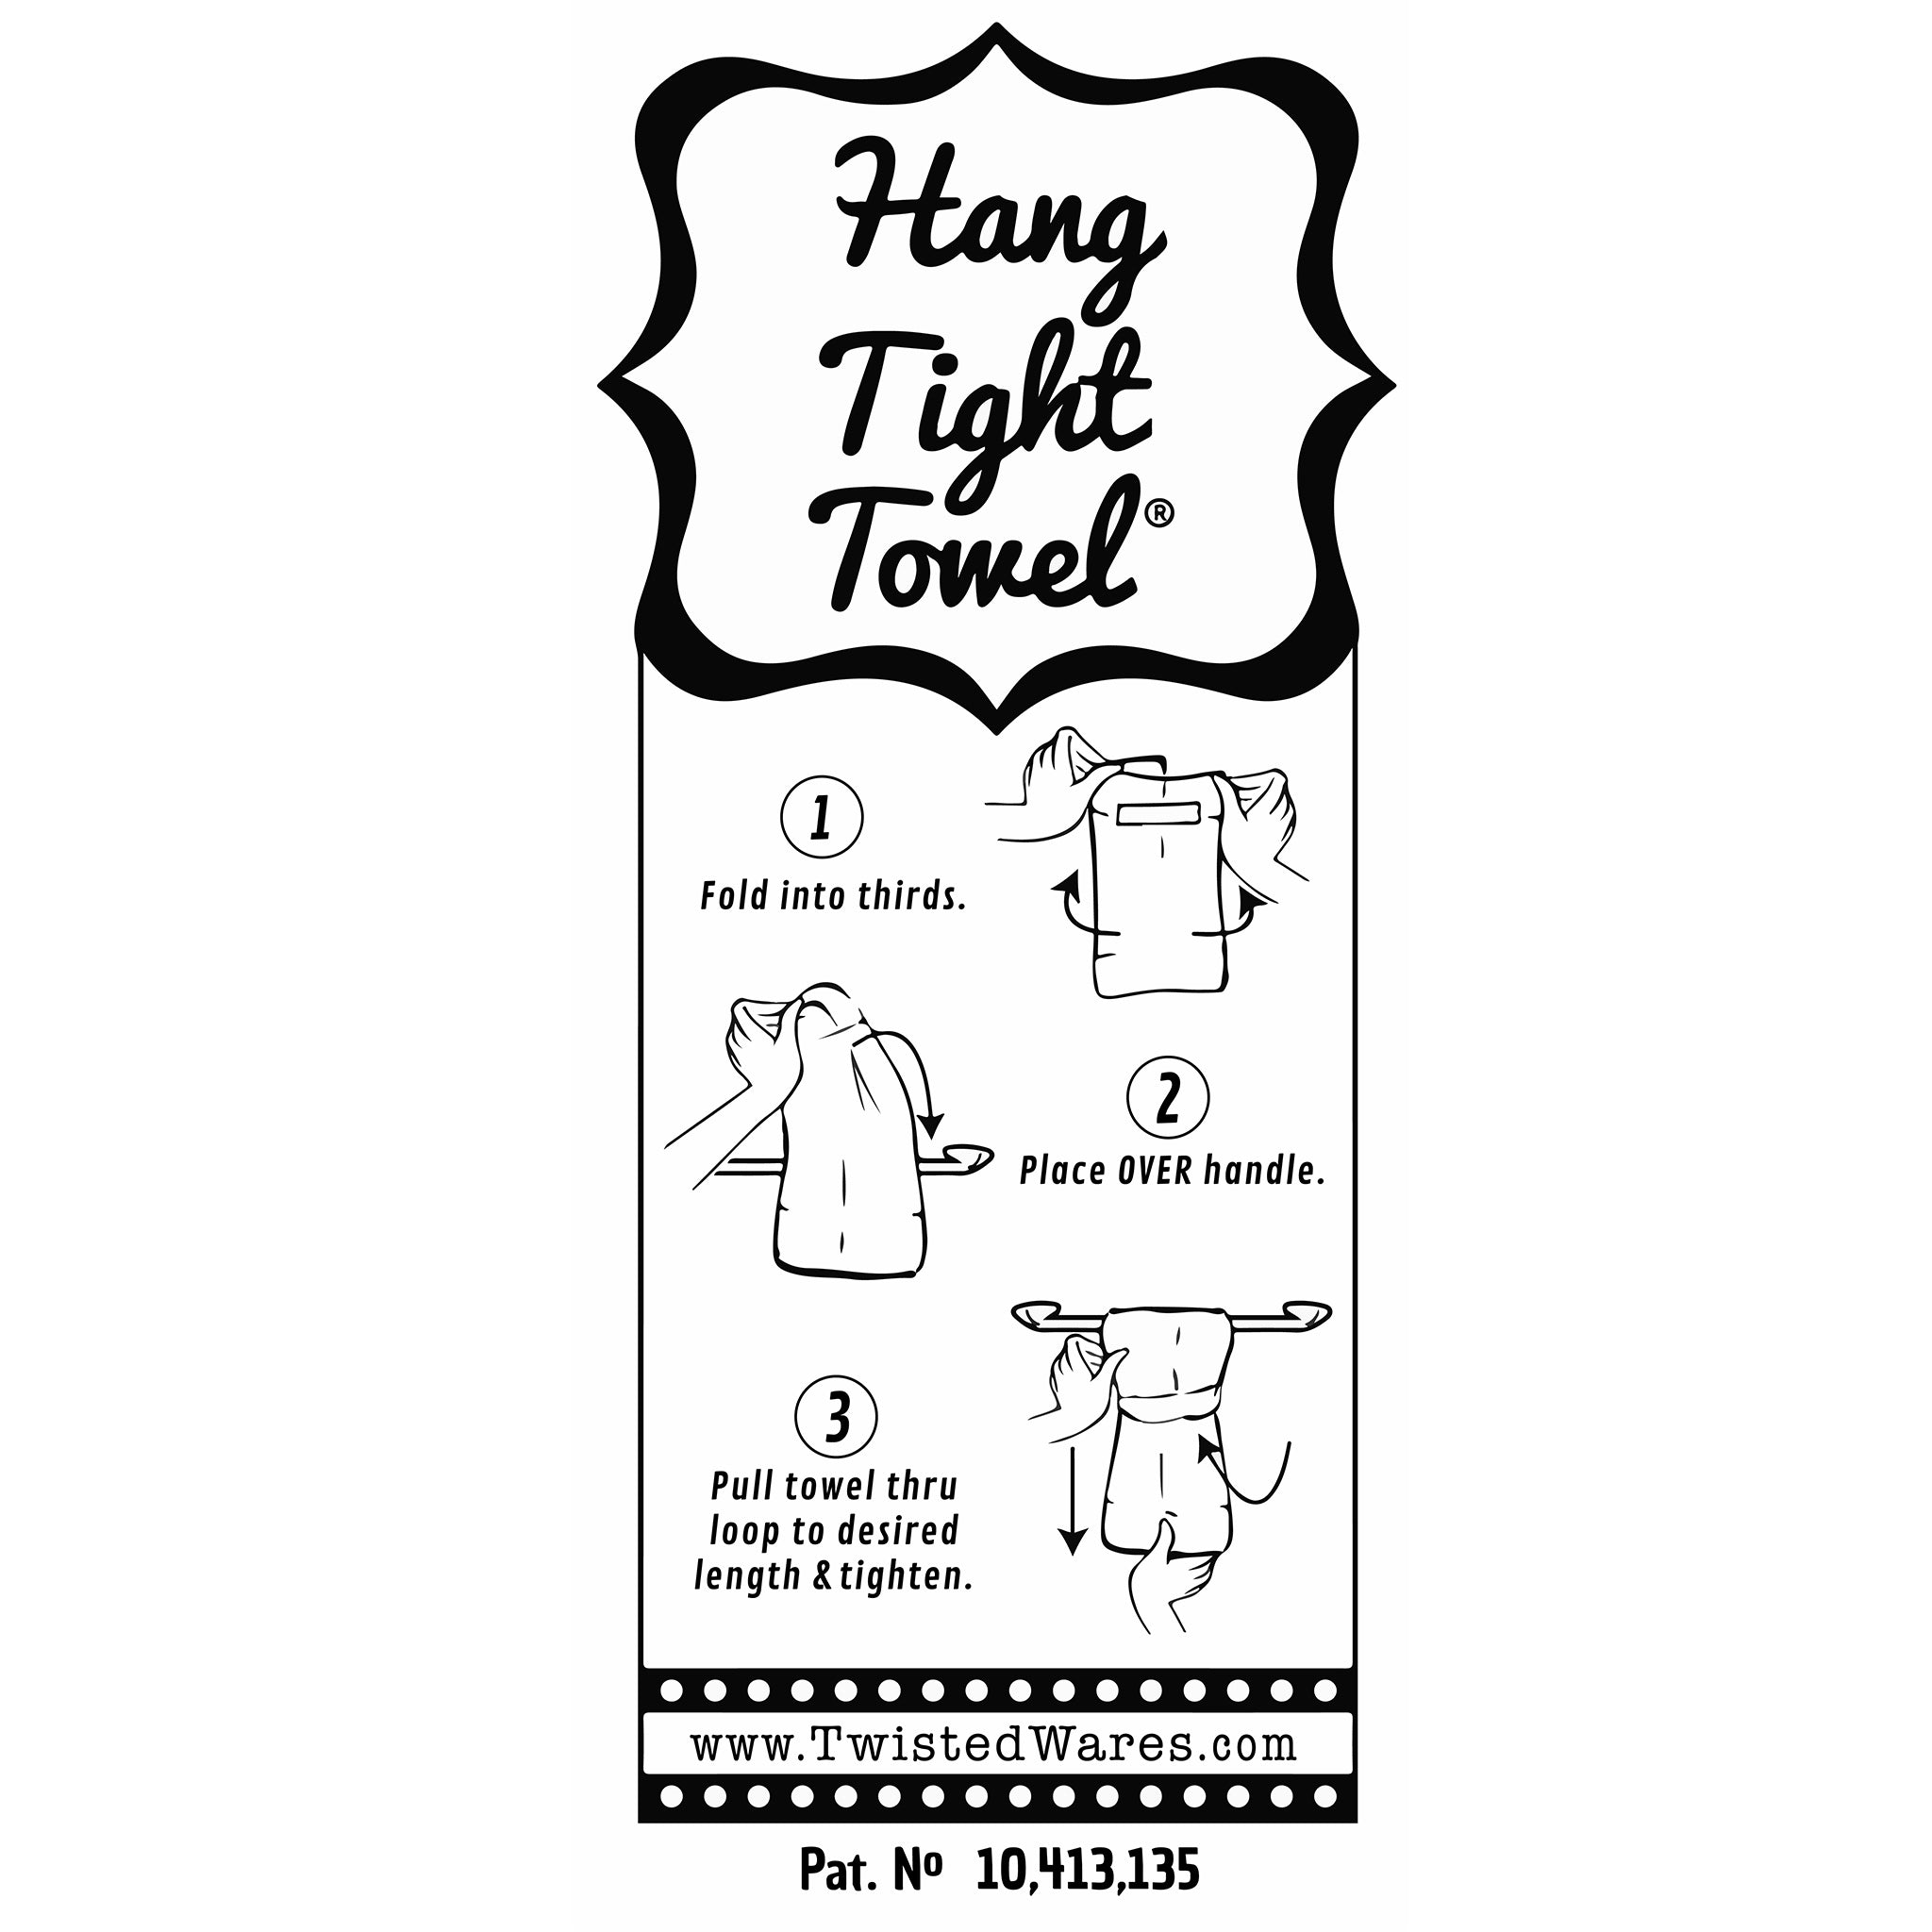 You Can't Say Happiness Without Saying Penis Flour Sack Hang Tight Towel®